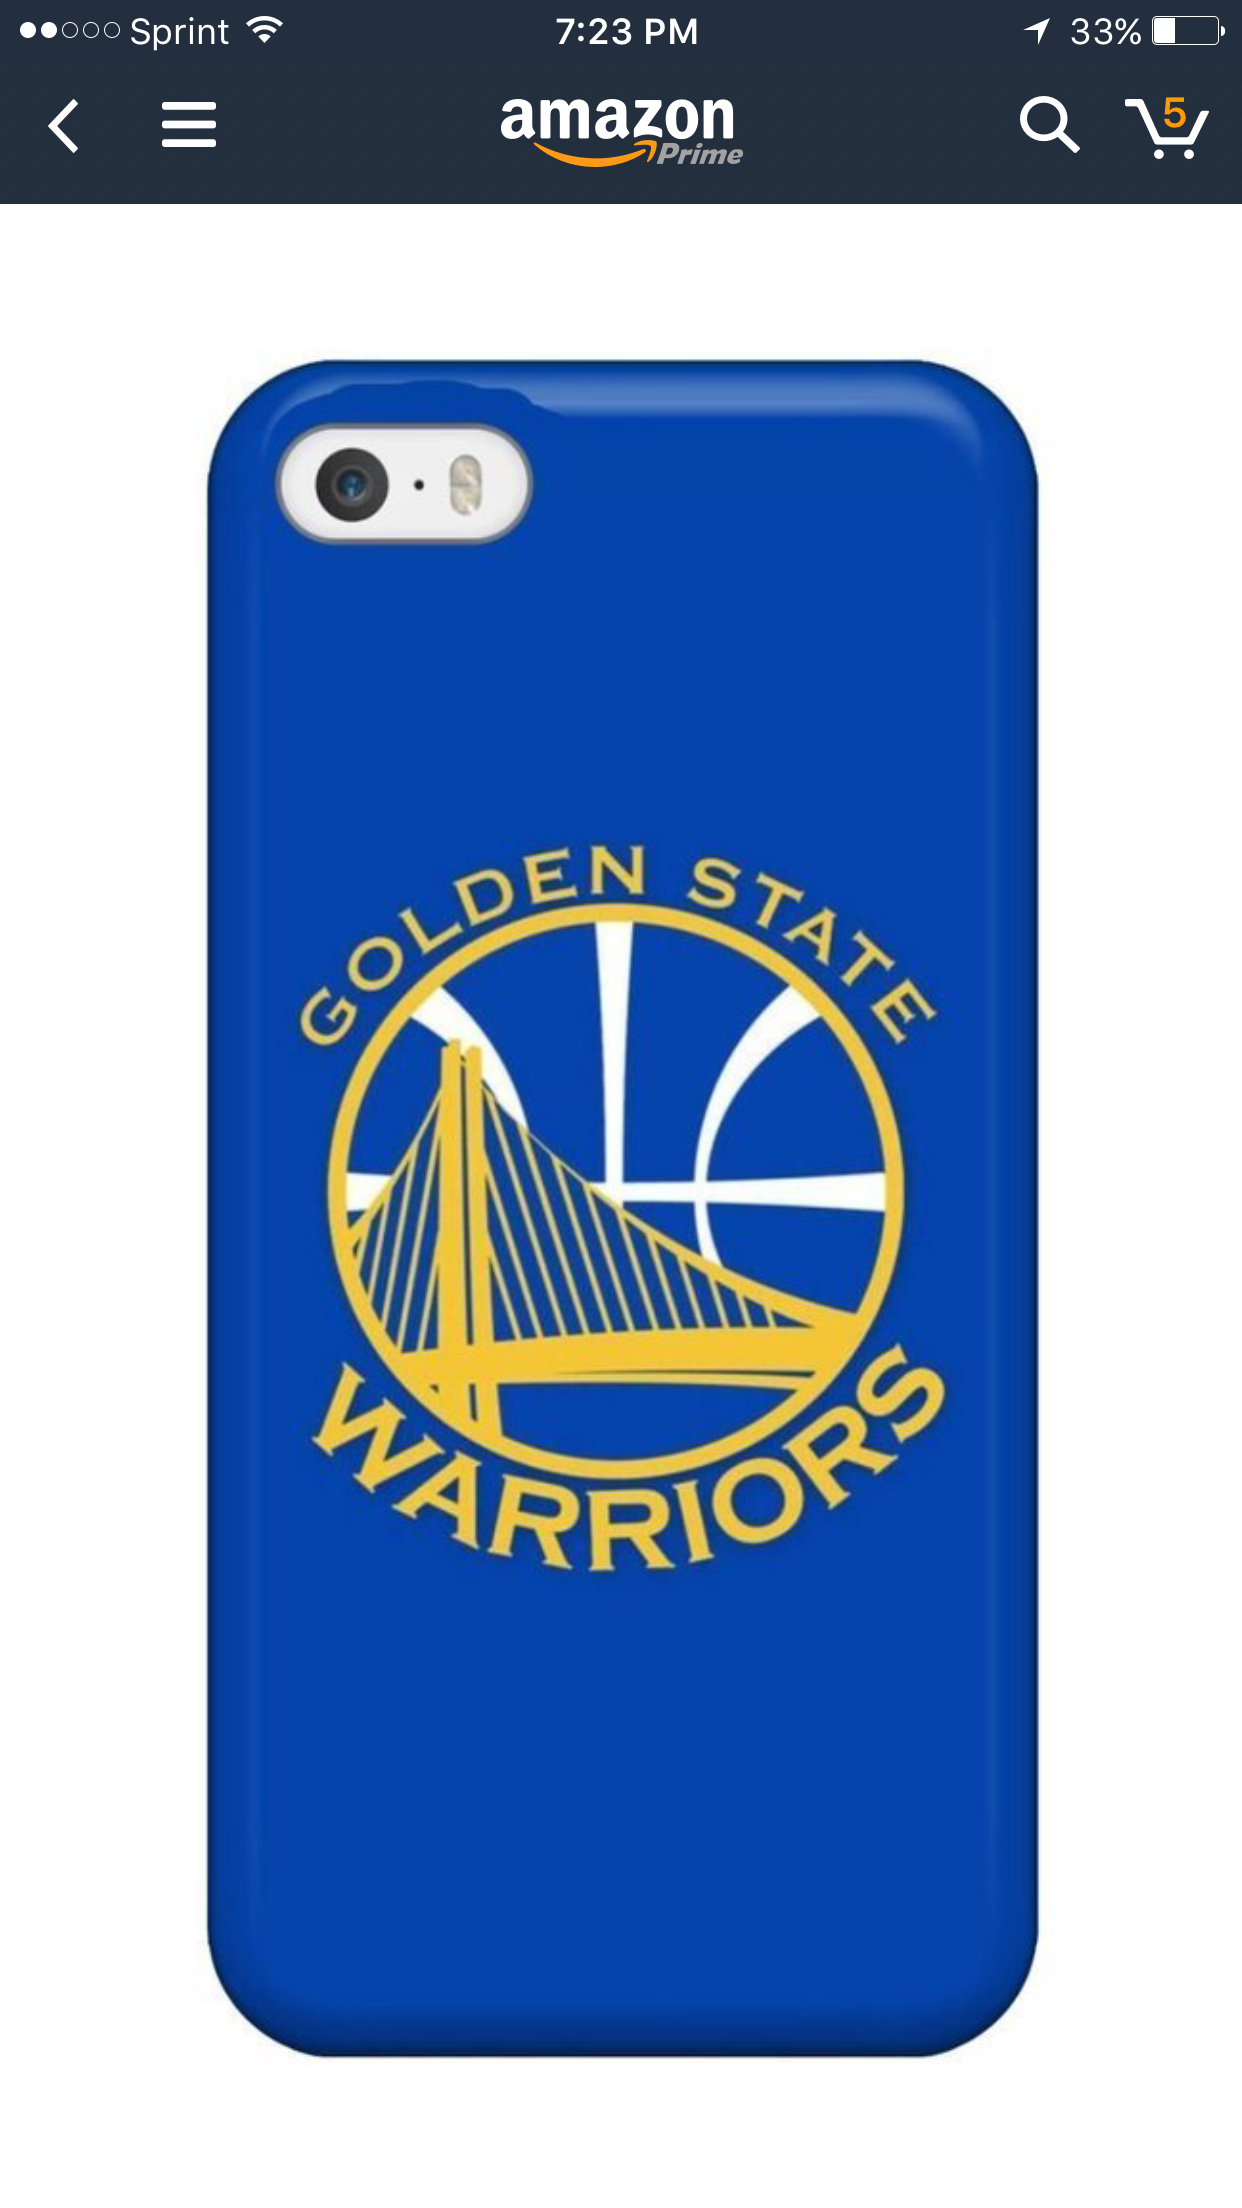 huge selection of 1c16a e847d Warriors phone case | Golden State Warriors | Phone cases, Phone ...